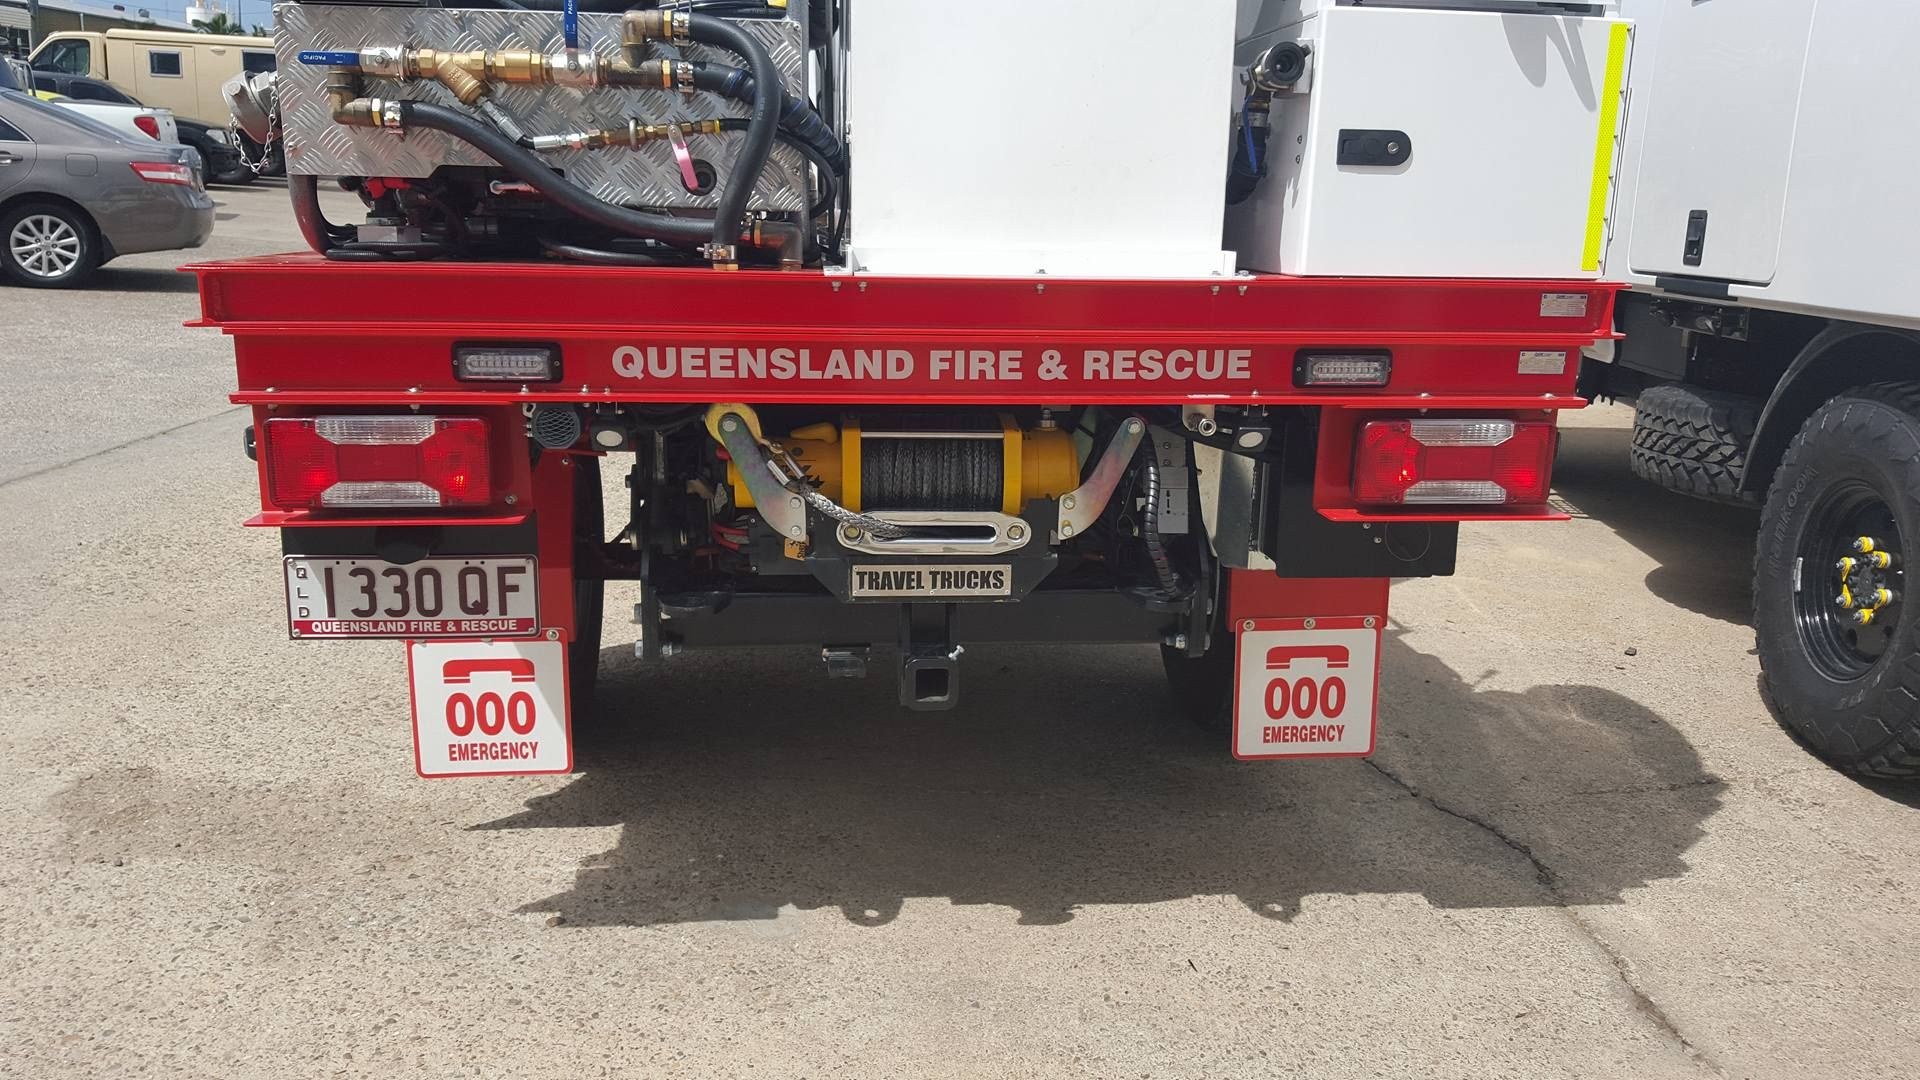 Sherpa winch fitted to QLD Fire & Rescue Truck  #offroad